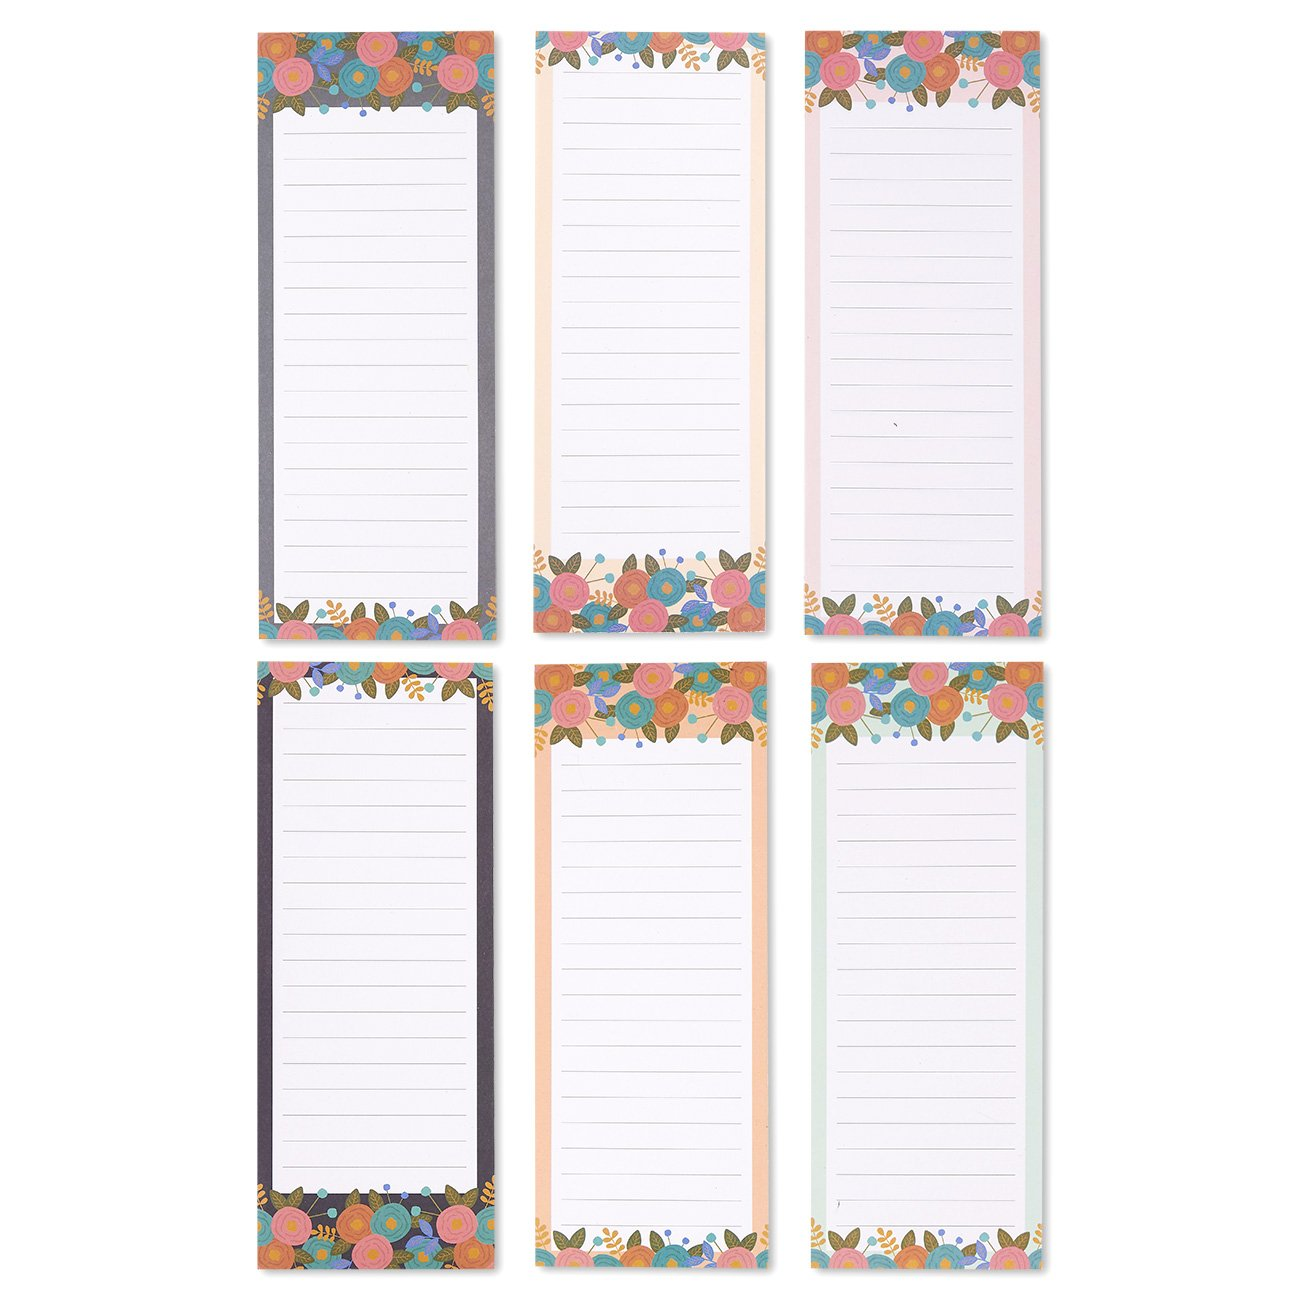 To-do-List Notepad - 6-Pack Magnetic Notepads, Grocery List Magnet Pad Stationary for To Do List, Flower Designs, 60 Sheets Per Pad